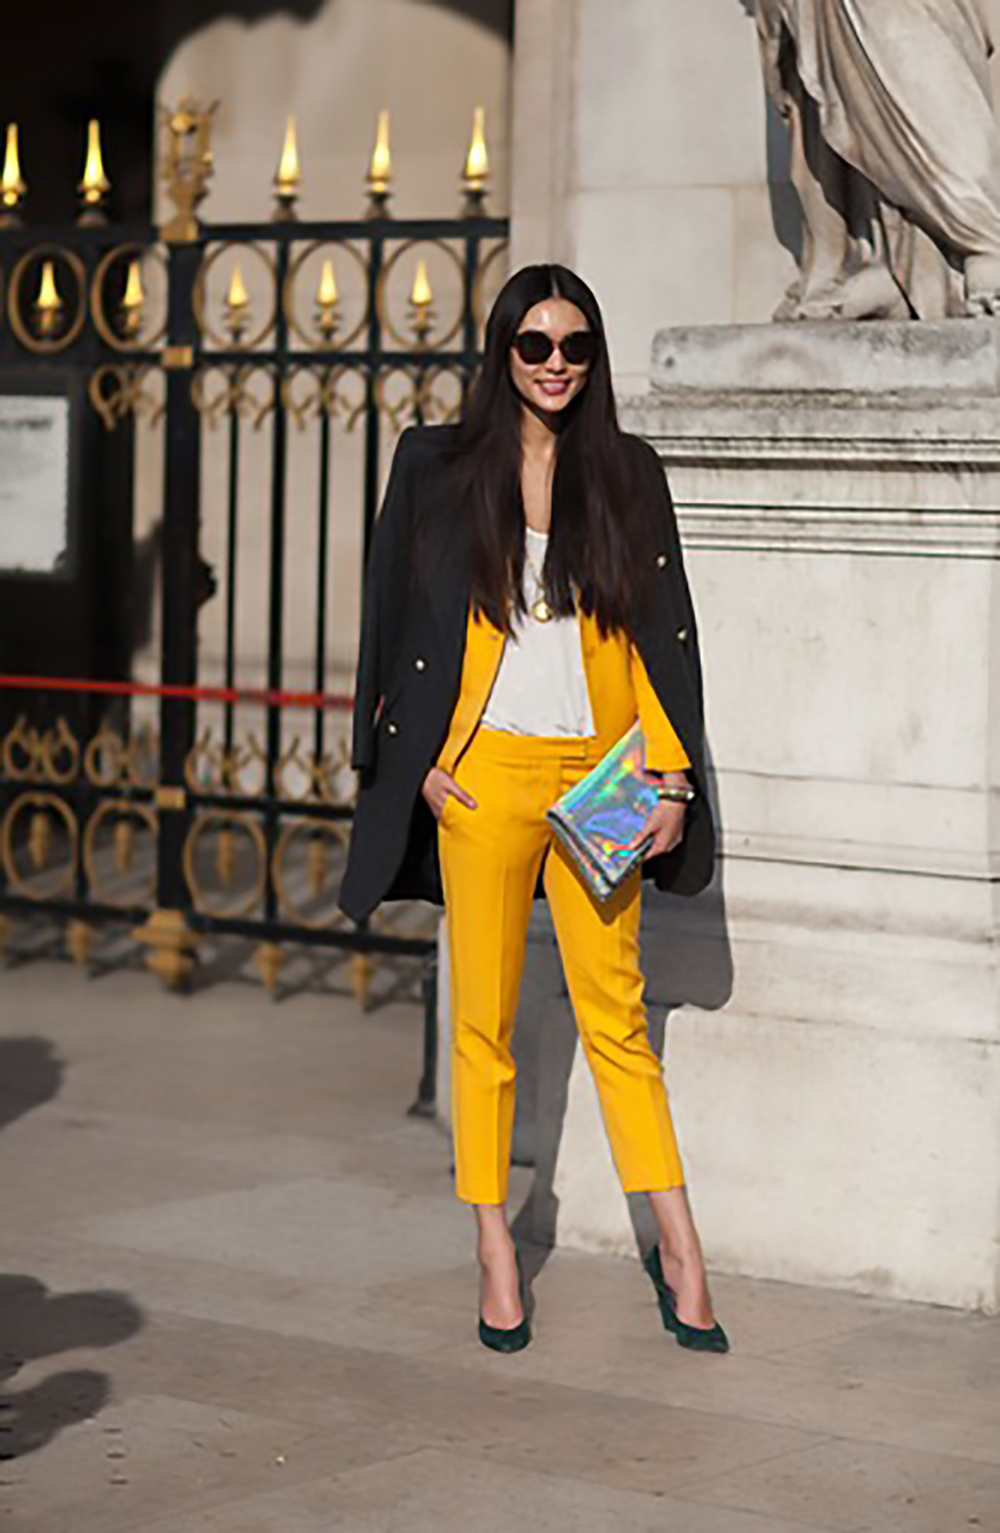 harpers bazaar paris street style 2013 66 of 192 jackets over shoulders 1500.jpg